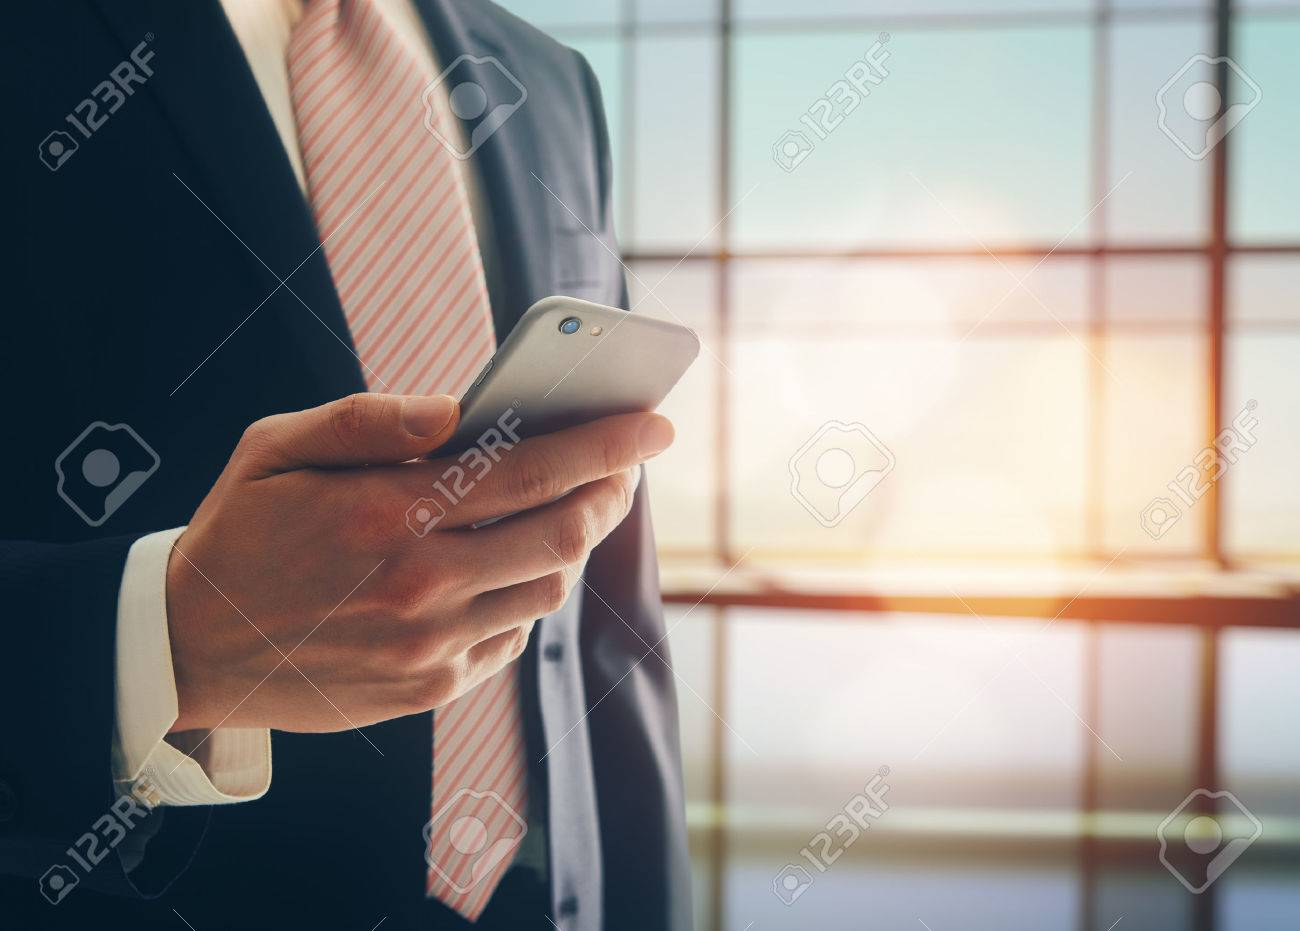 Portrait of a confident man. Entrepreneur working on phone while standing in modern office interior. Intelligent male lawyer holding phone. - 52328787